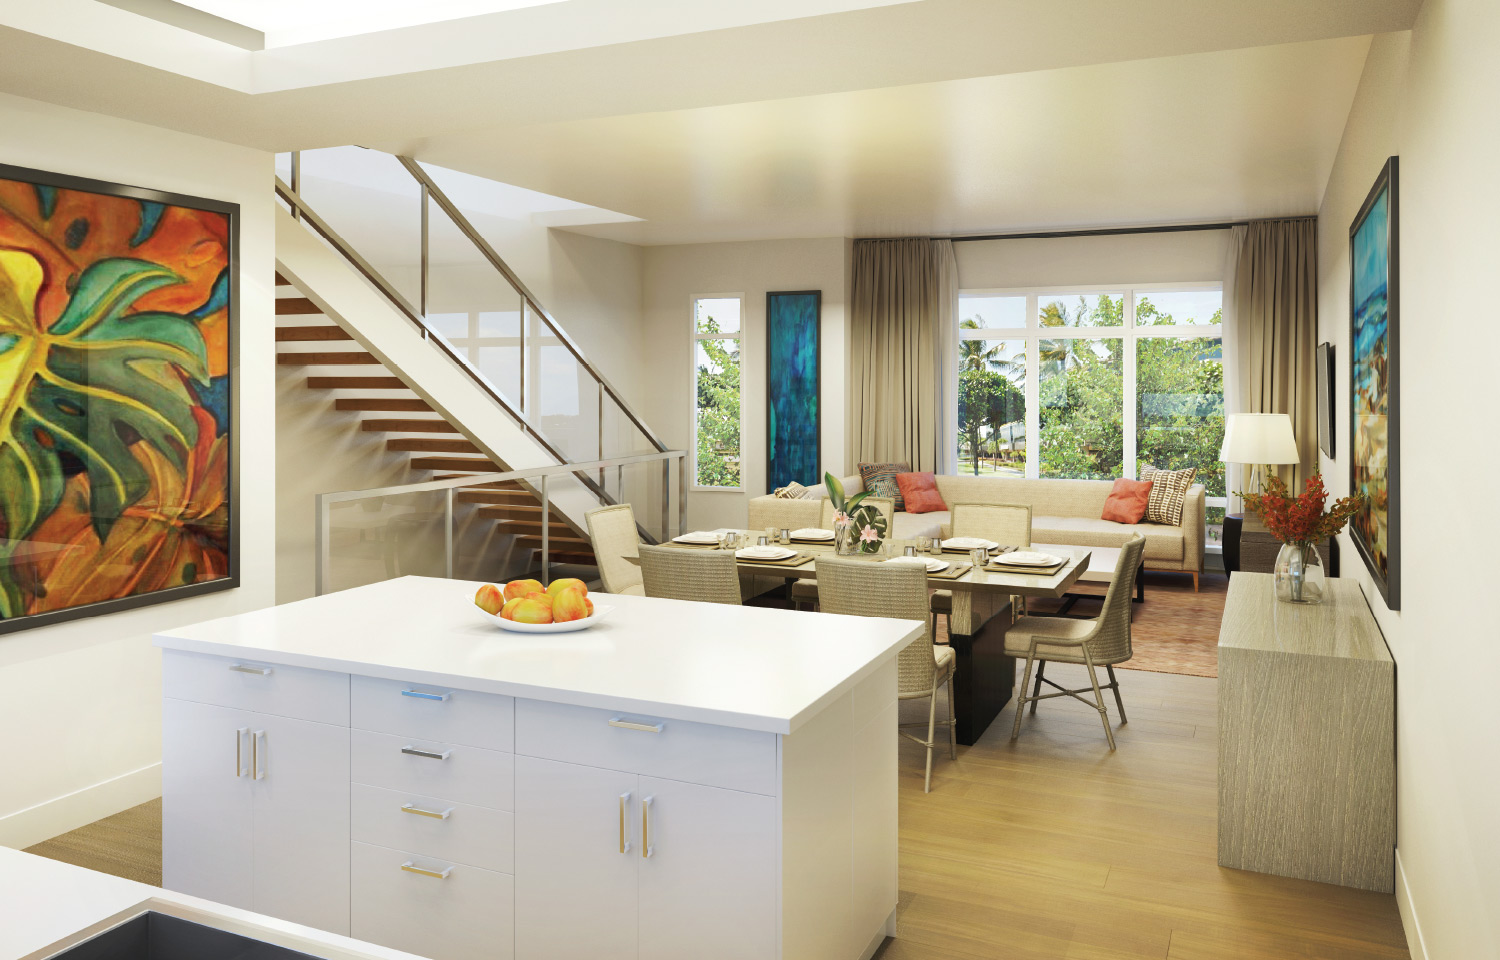 Not For Sale >> Townhomes for Sale in Honolulu | The Collection at 600 Ala ...